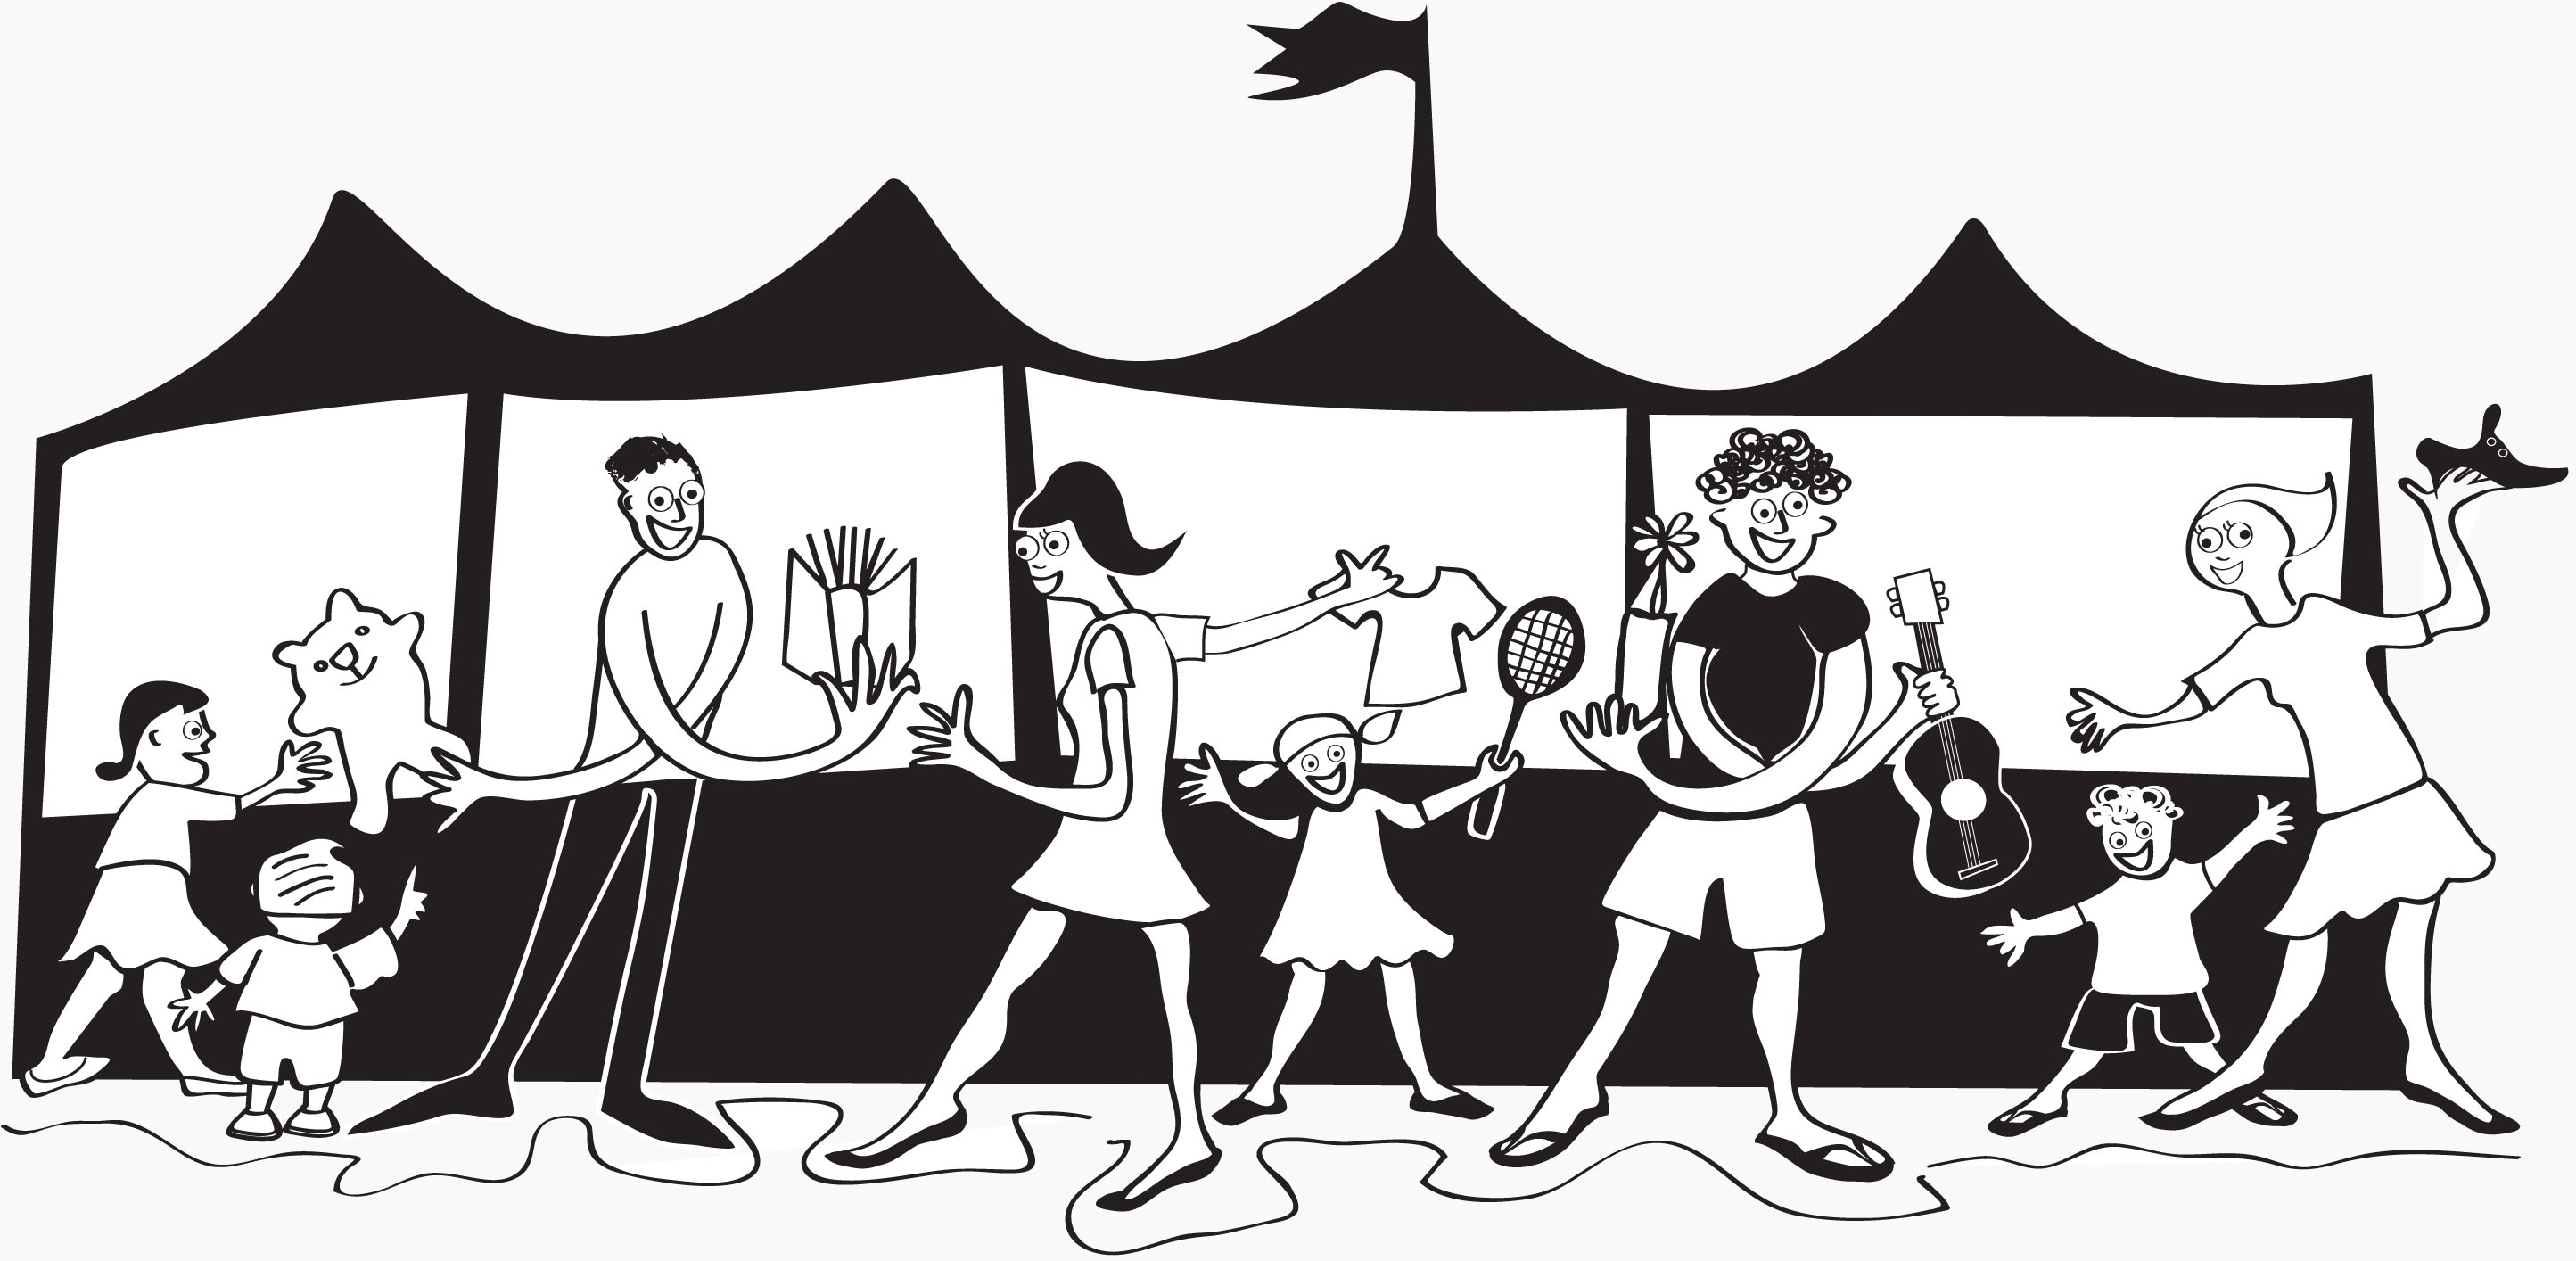 Flea market clipart black and white.